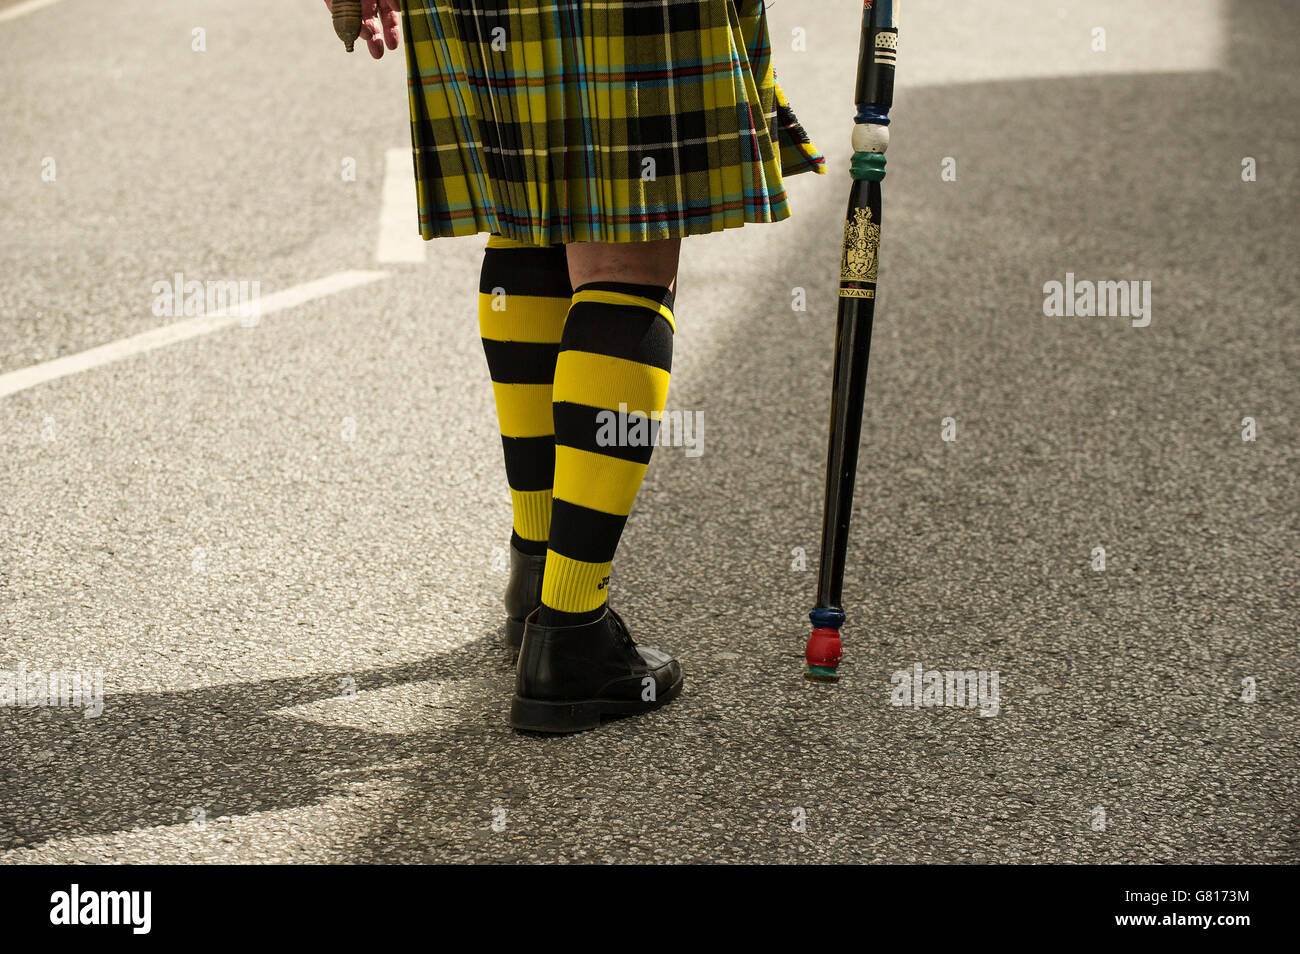 The Penzance Town Crier marching during the Mazey Day celebrations in Penzance Cornwall UK. - Stock Image